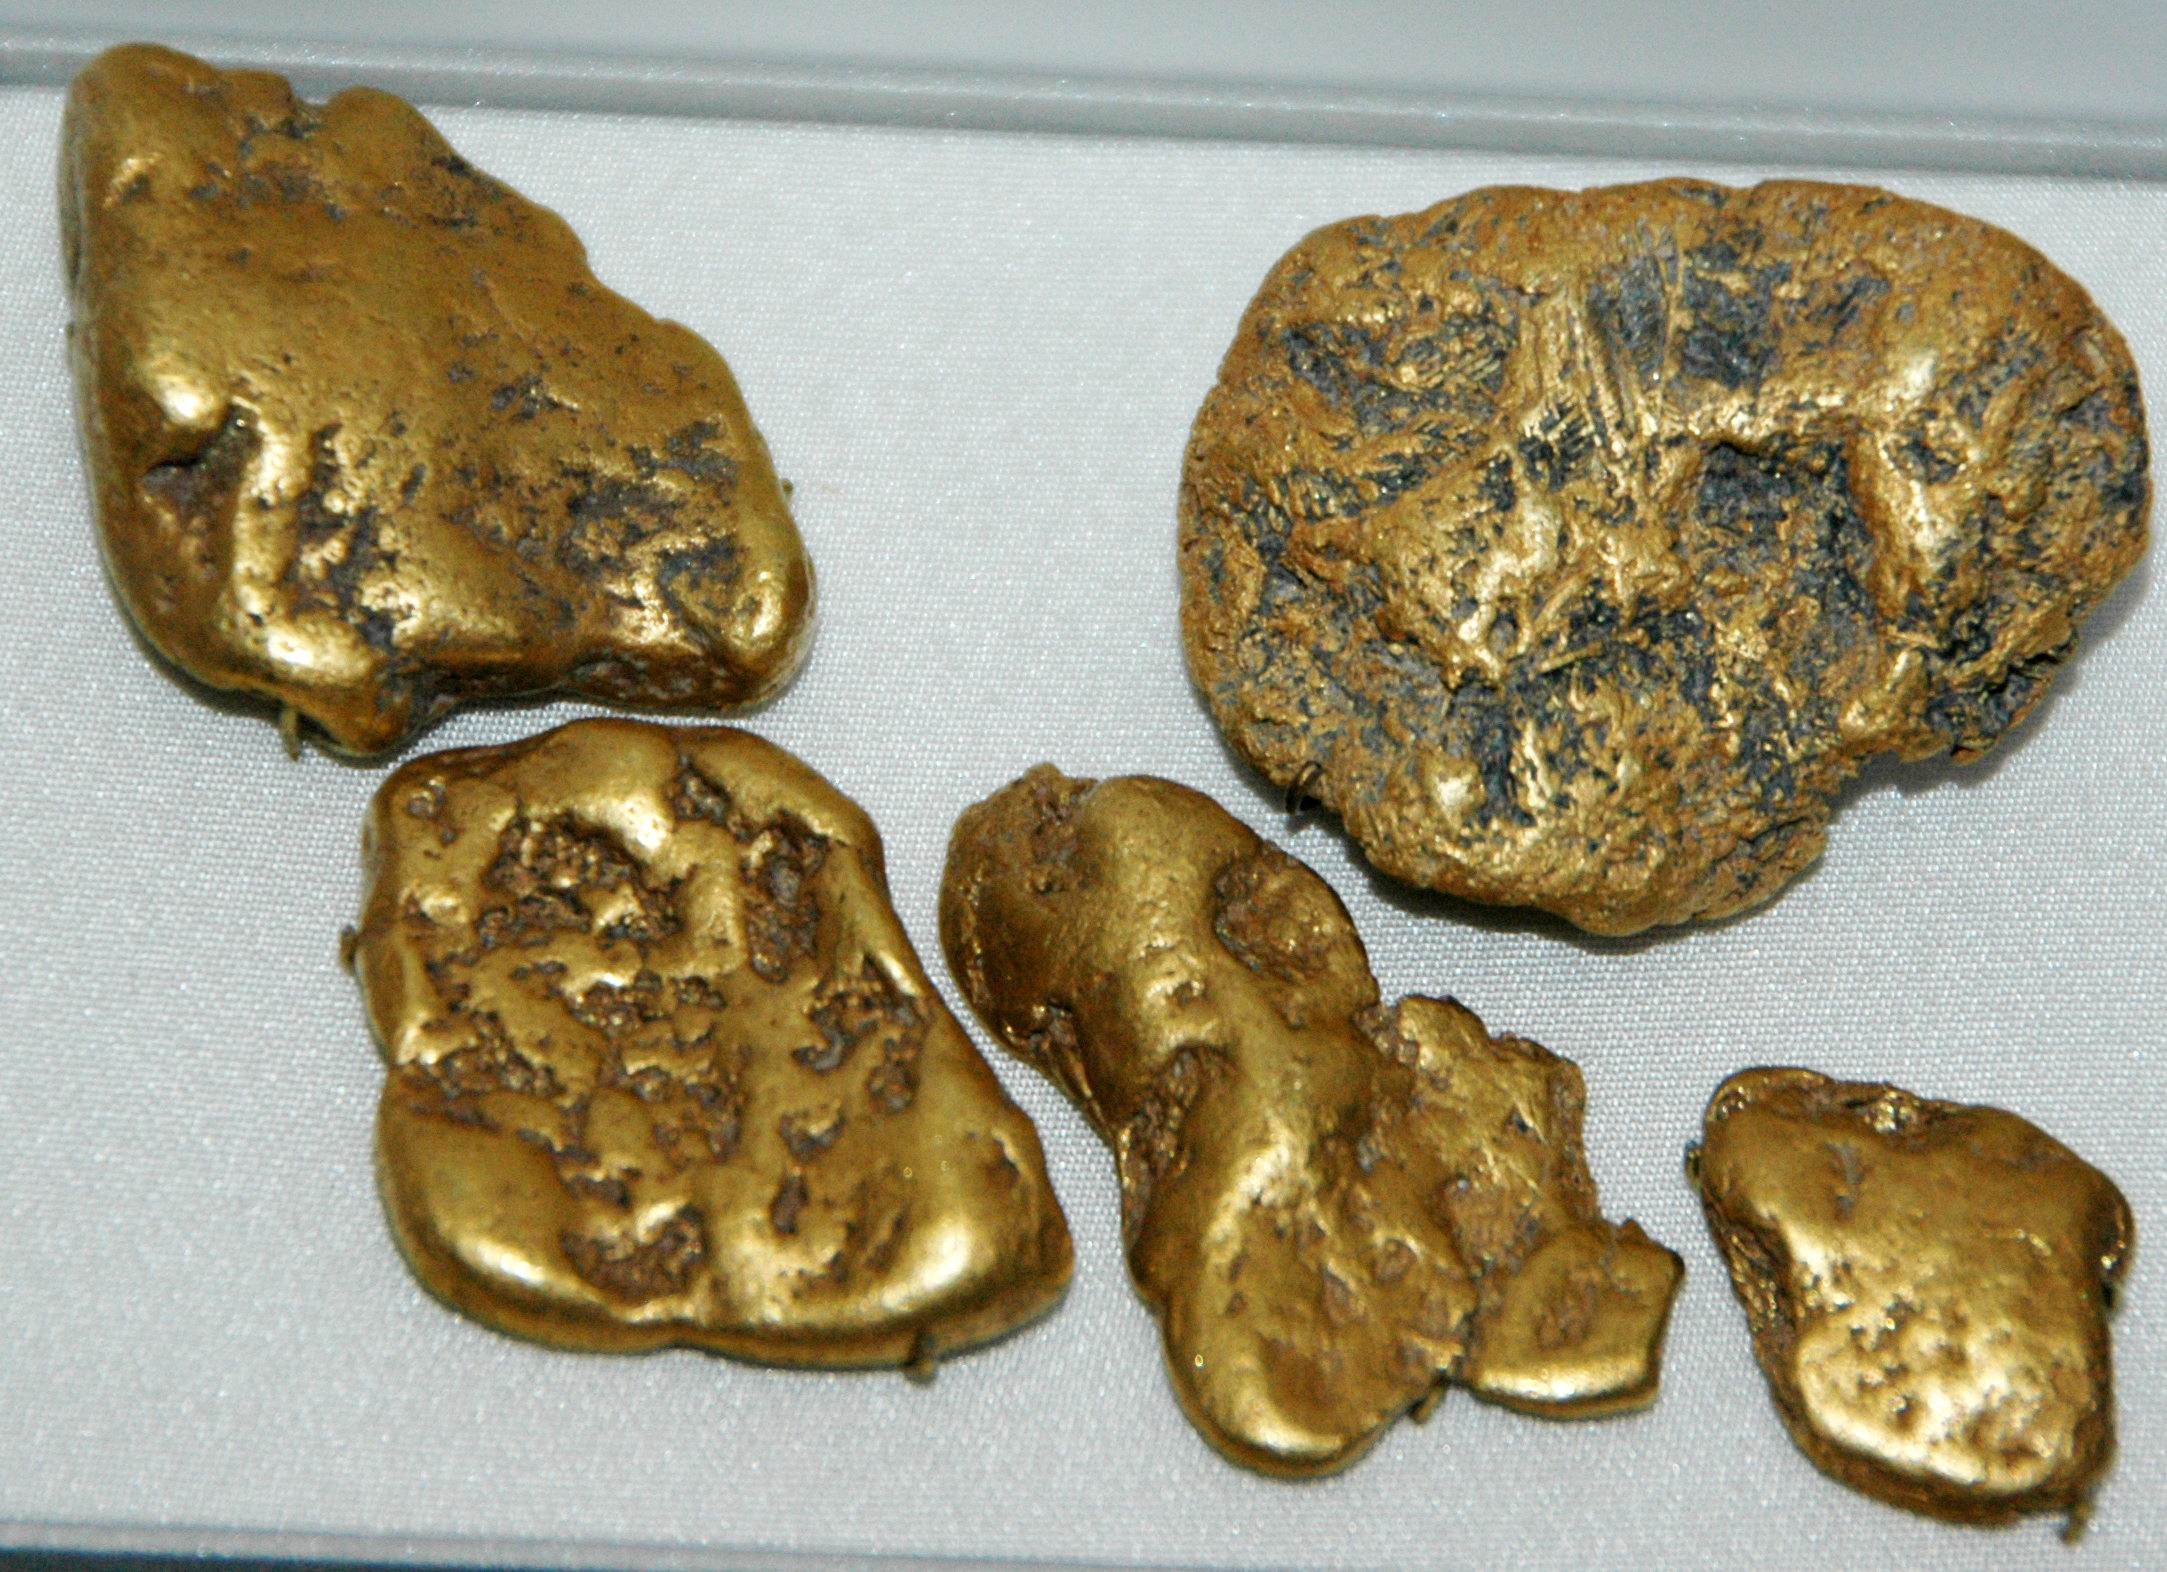 An image of gold nuggets.